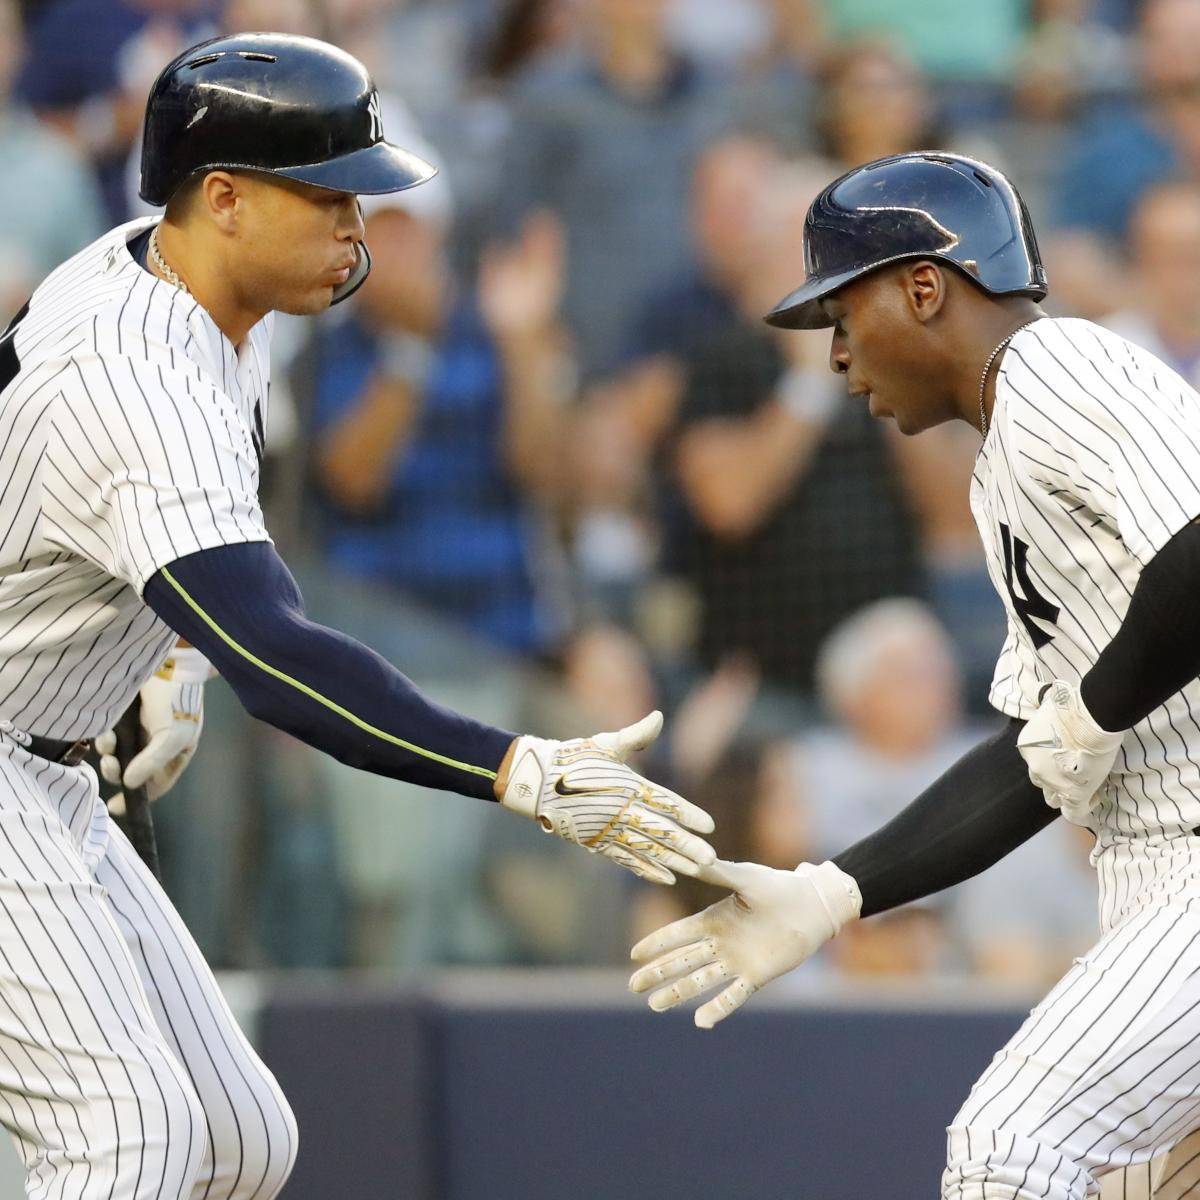 Yankees Clinch Playoff Berth with Win vs. Orioles